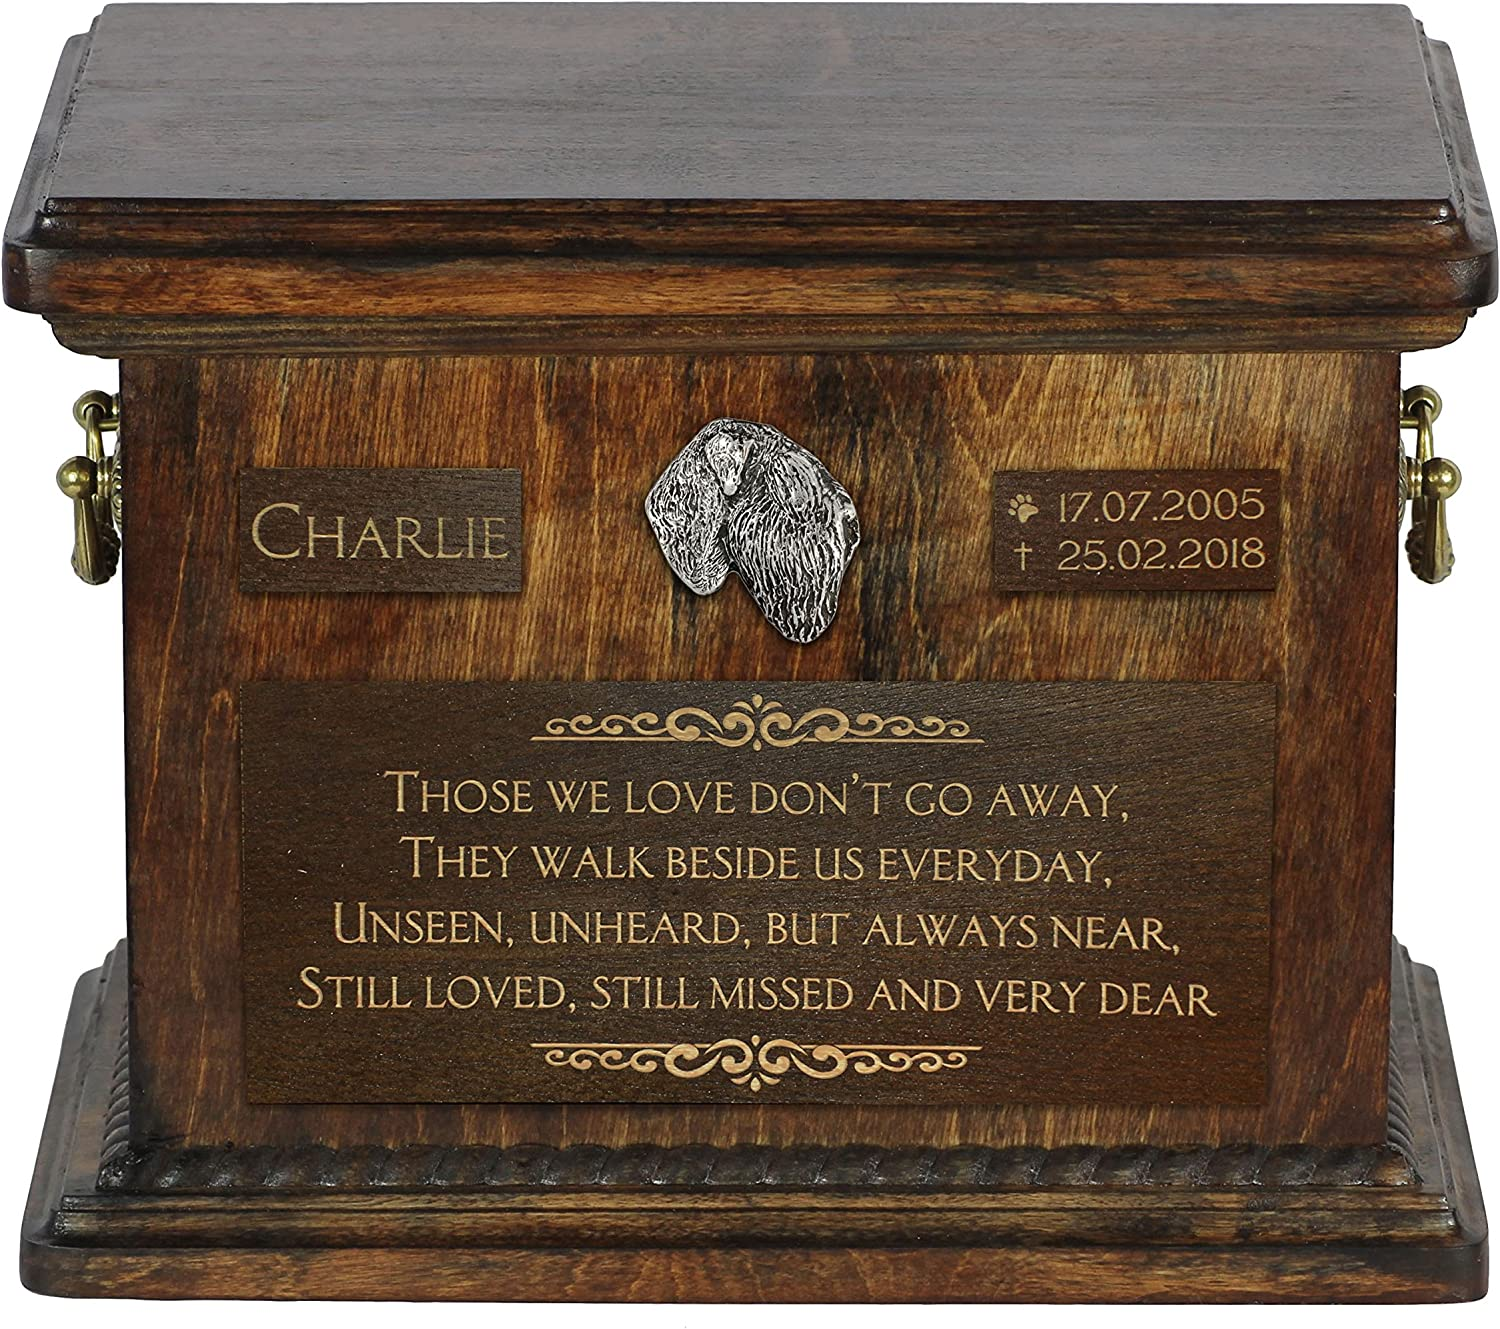 ArtDog Ltd. Black Russian Terrier, urn for dog's ashes with relief and sentence with your dog name and date